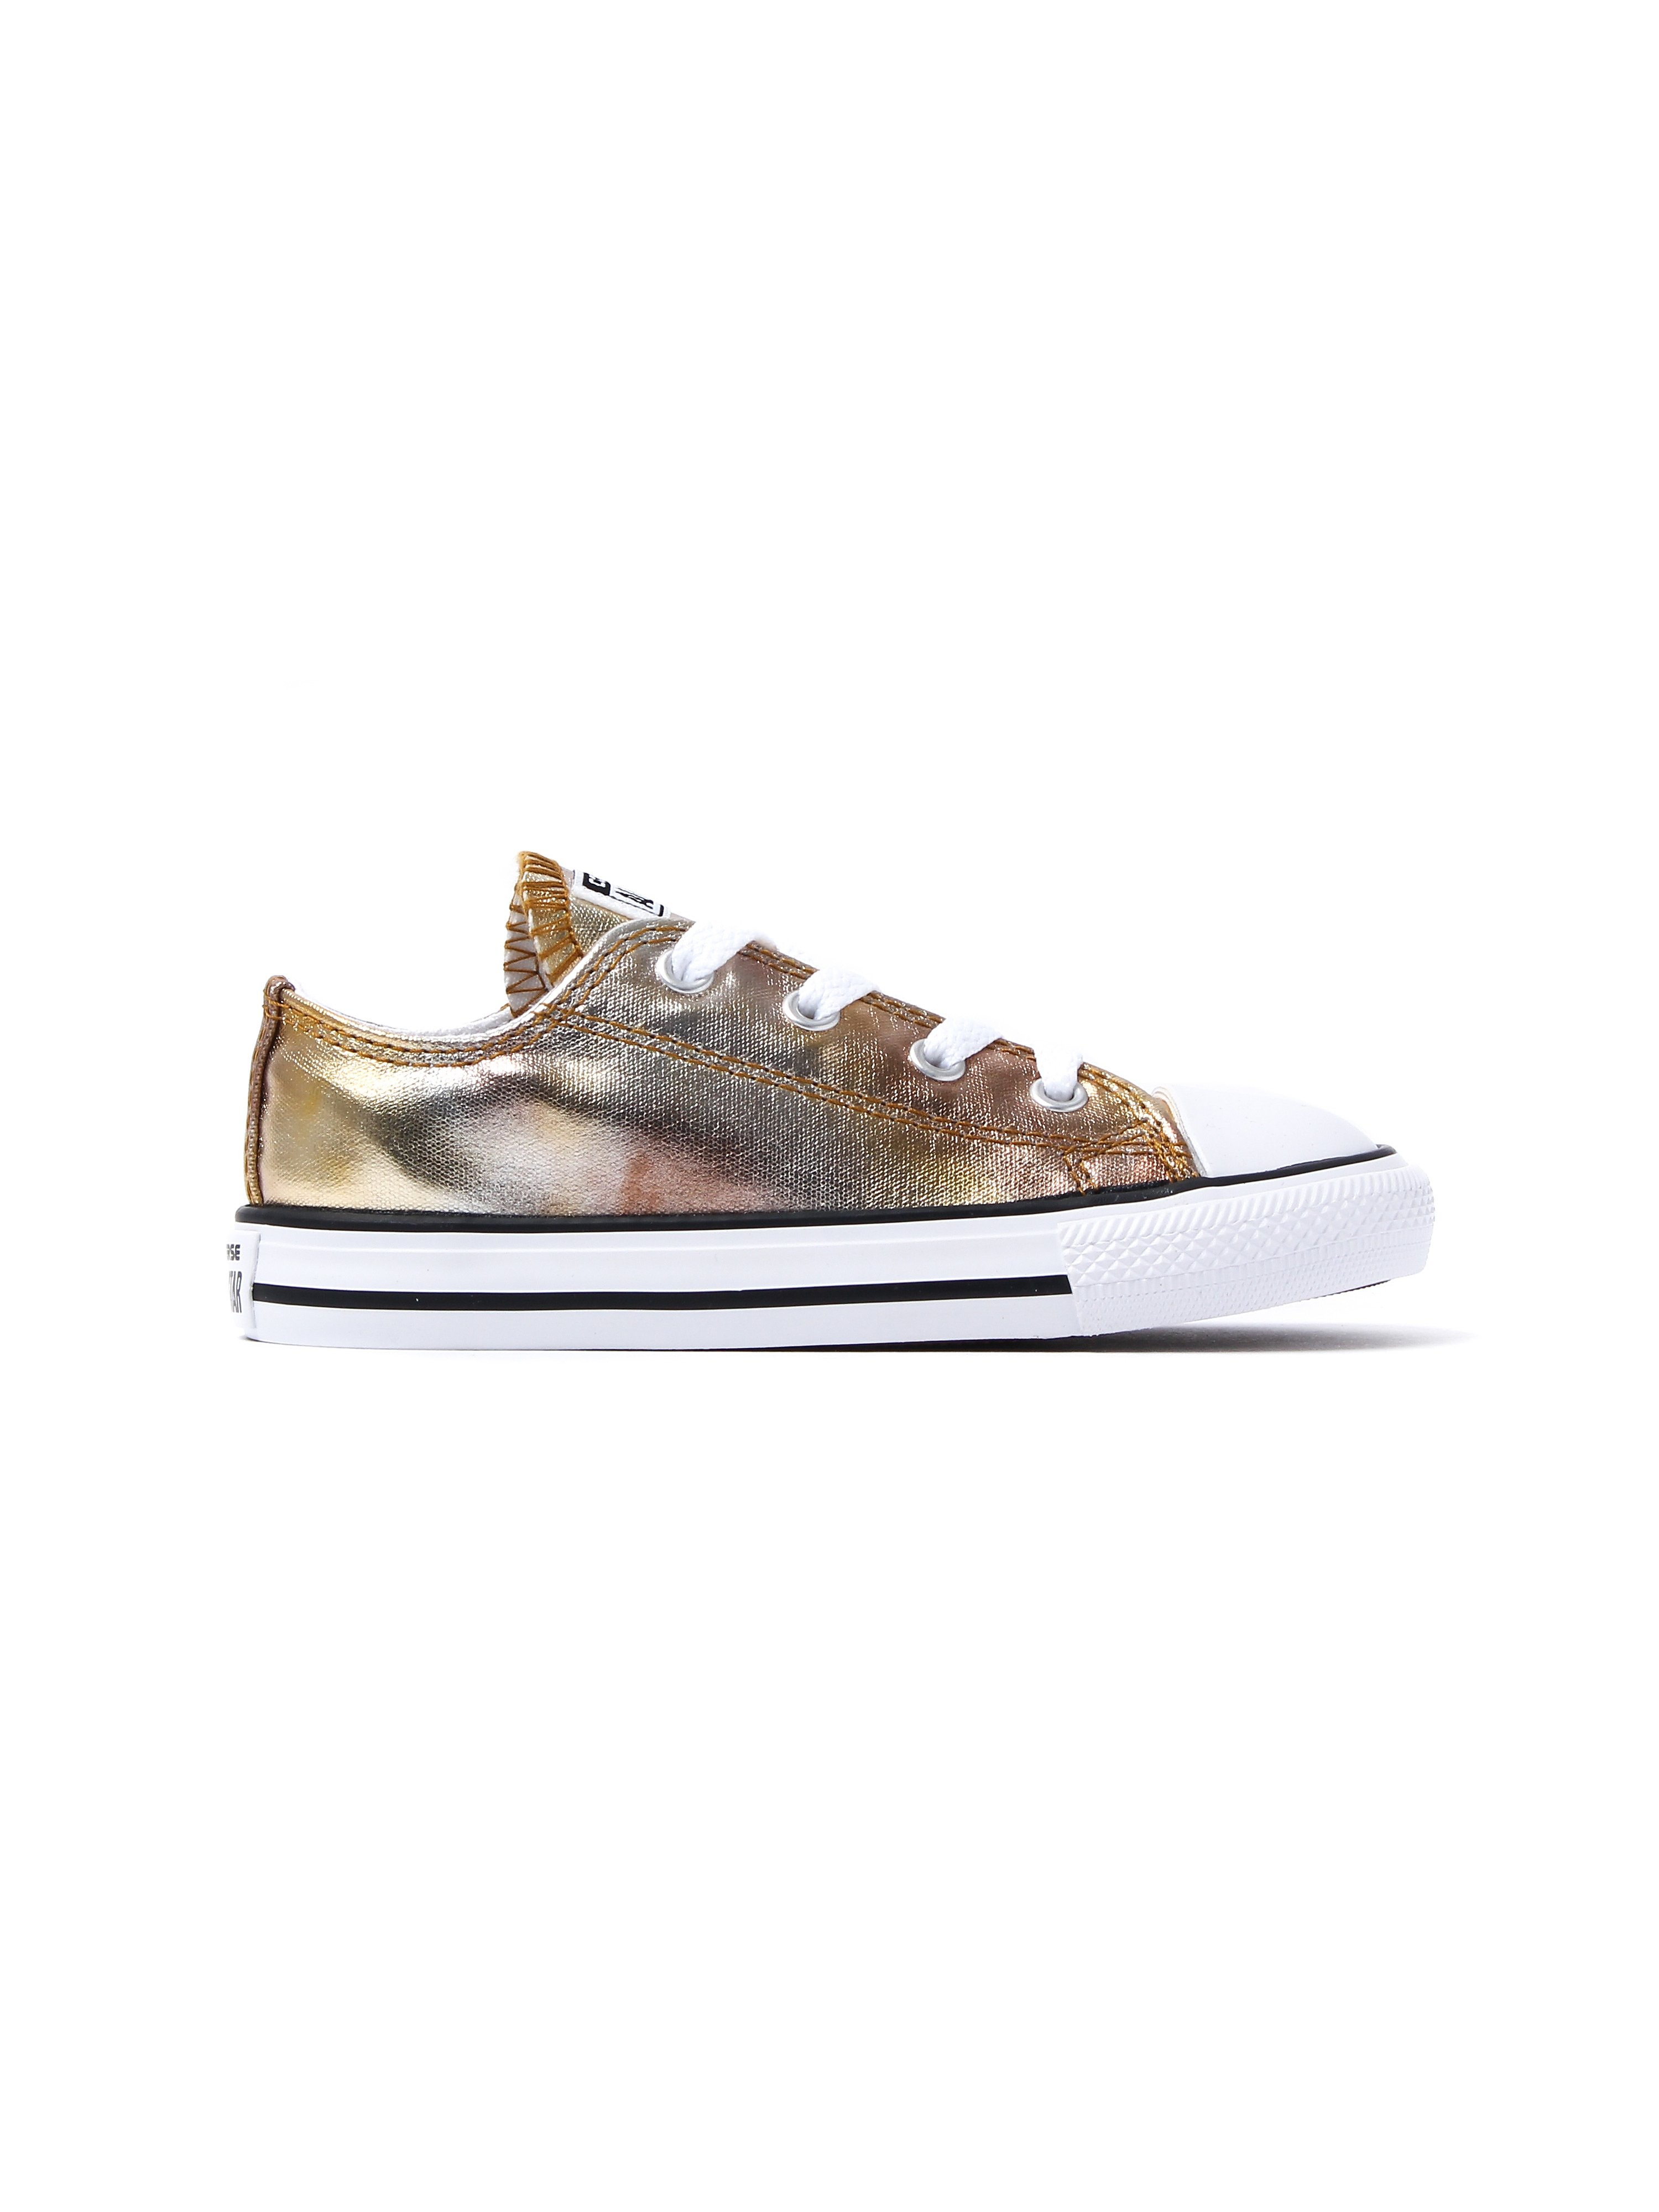 Converse Infants Chuck Taylor All Star OX Trainers - Silver Gold